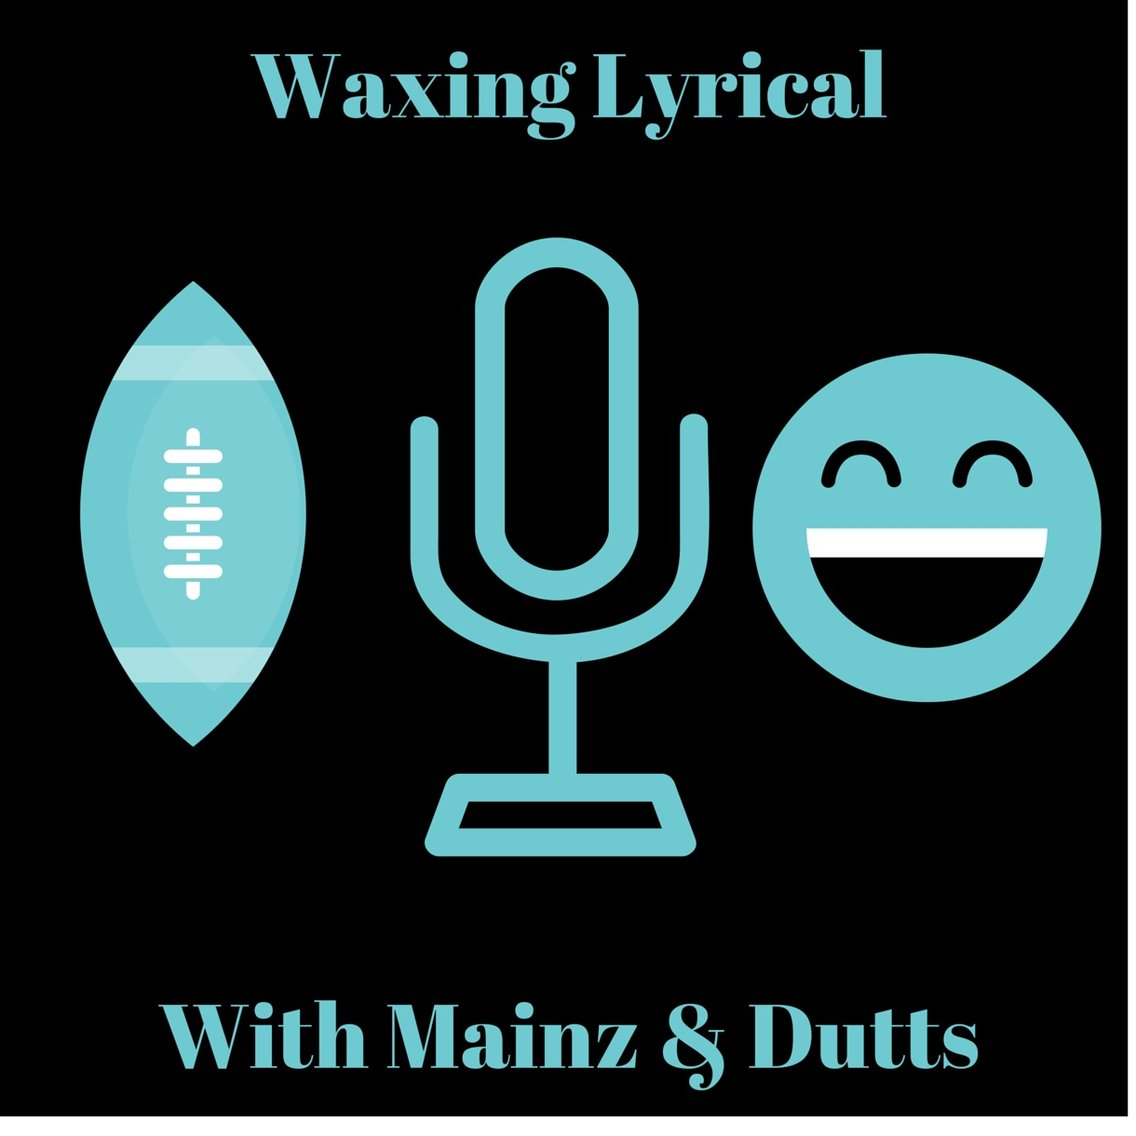 Waxing Lyrical with Mainz and Dutts - immagine di copertina